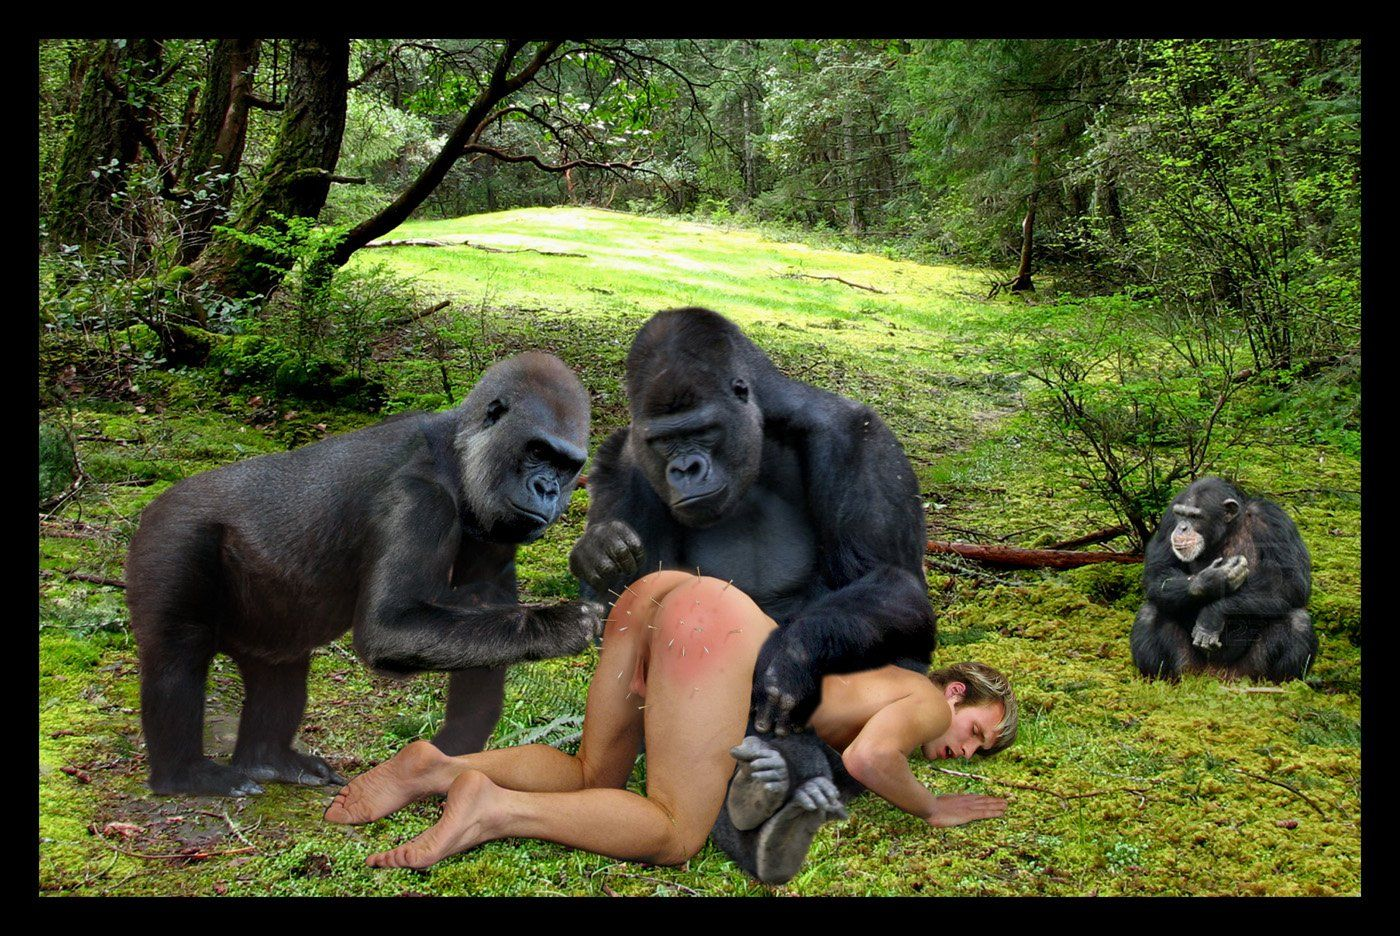 Free Ape Sex Videos gorilla fucking woman pictures - top porn images.